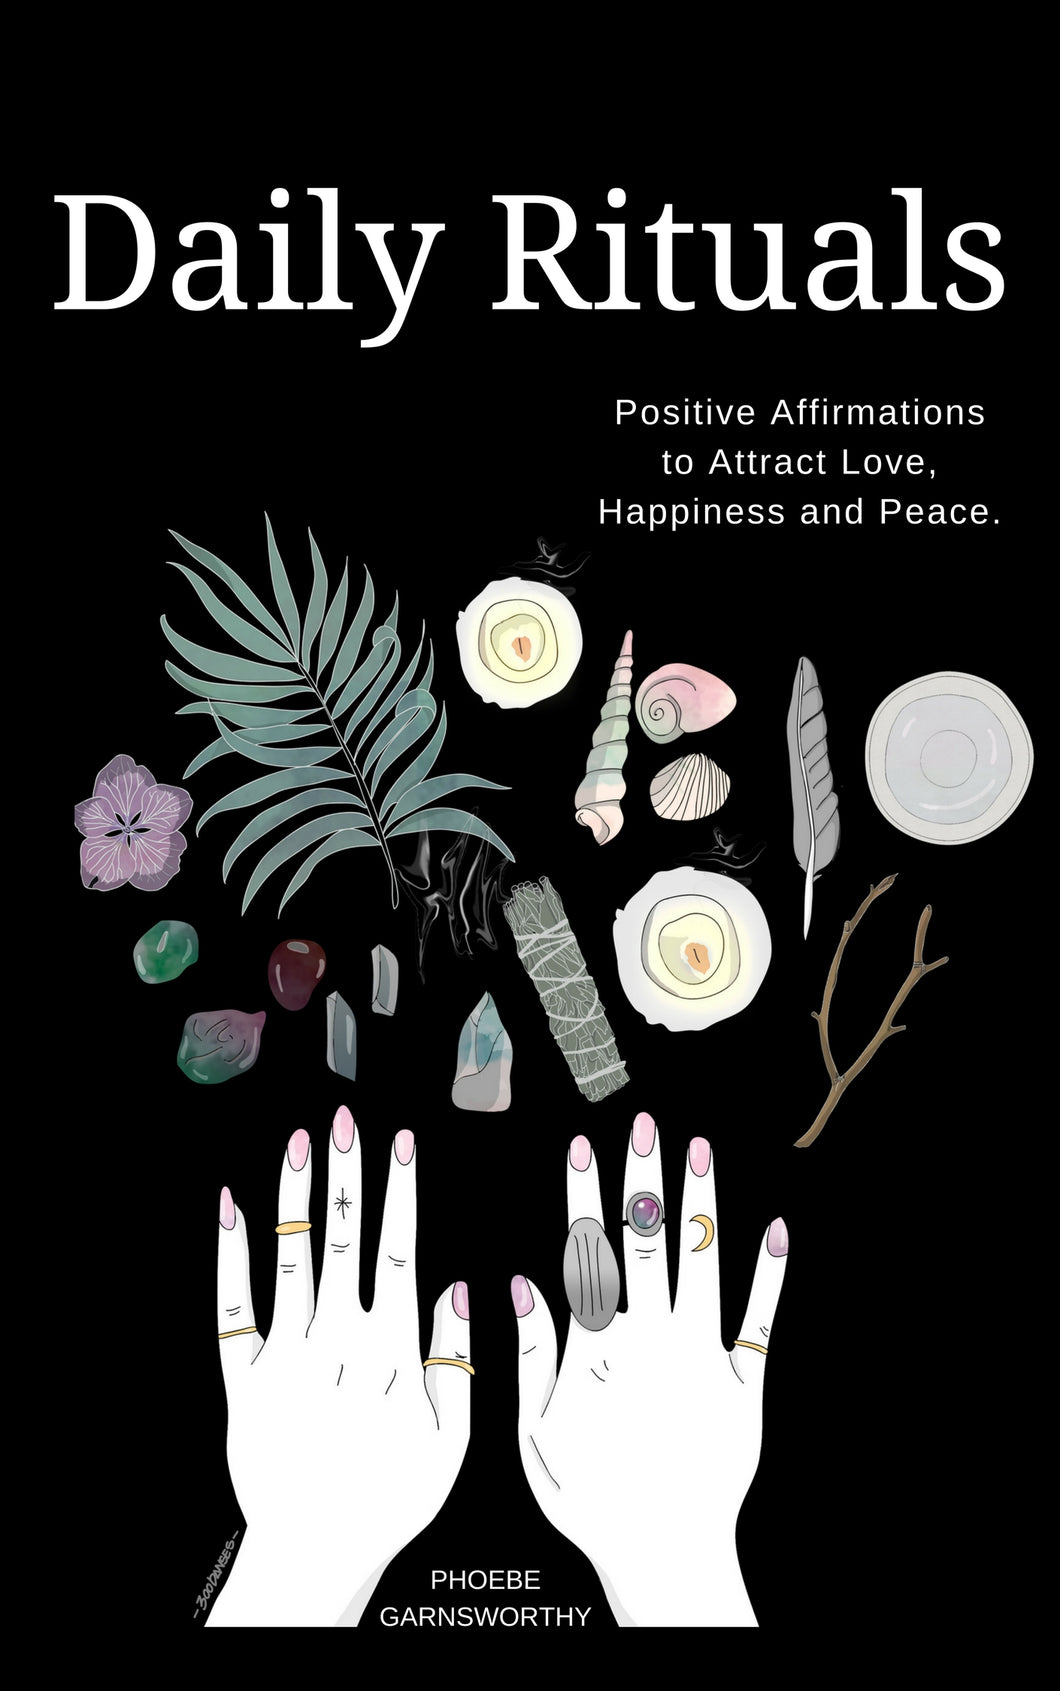 Daily Rituals: Positive Affirmations to Attract Love, Happiness & Peace - *EBOOK*